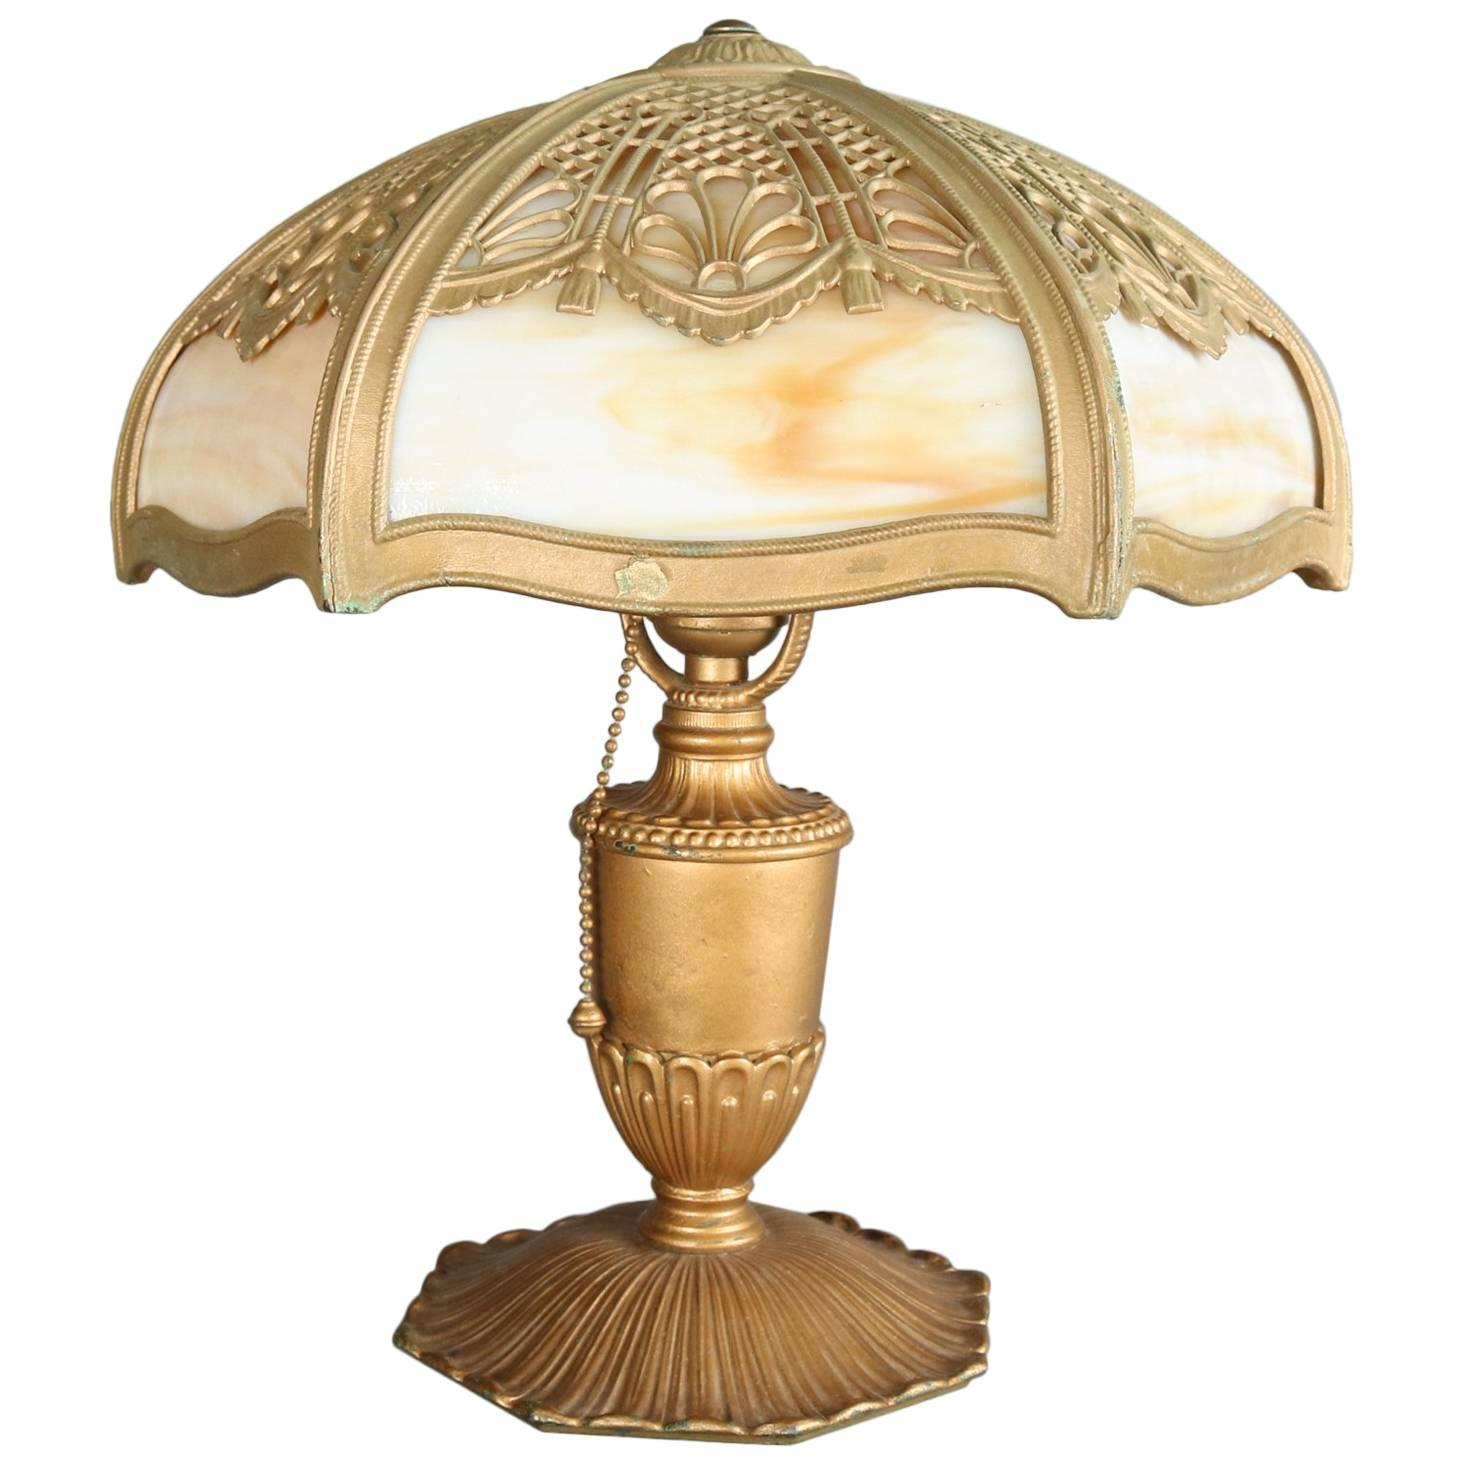 Arts and Crafts Table Lamps - 84 For Sale at 1stdibs